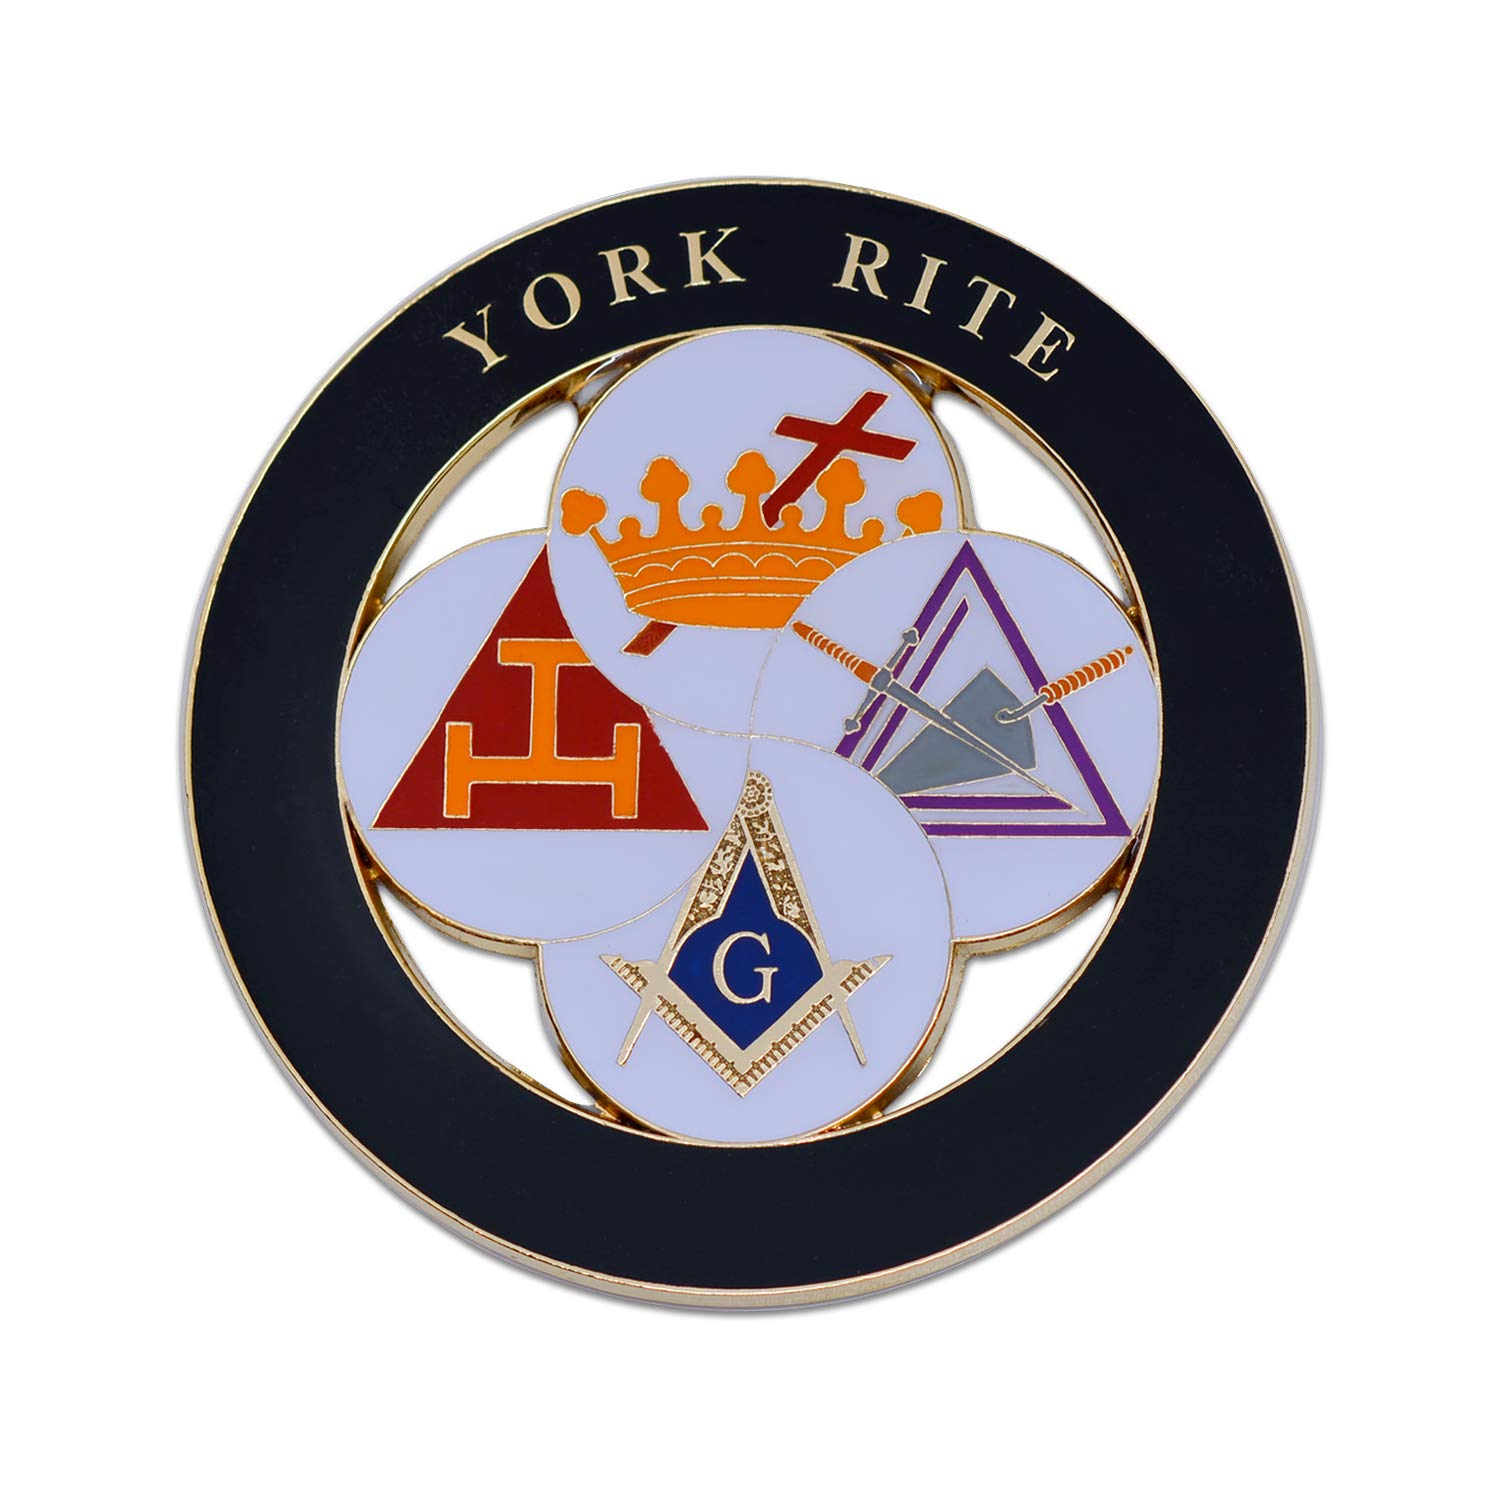 3 Diameter York Rite Royal Arch Templar Cryptic Council Round Black Masonic Auto Emblem